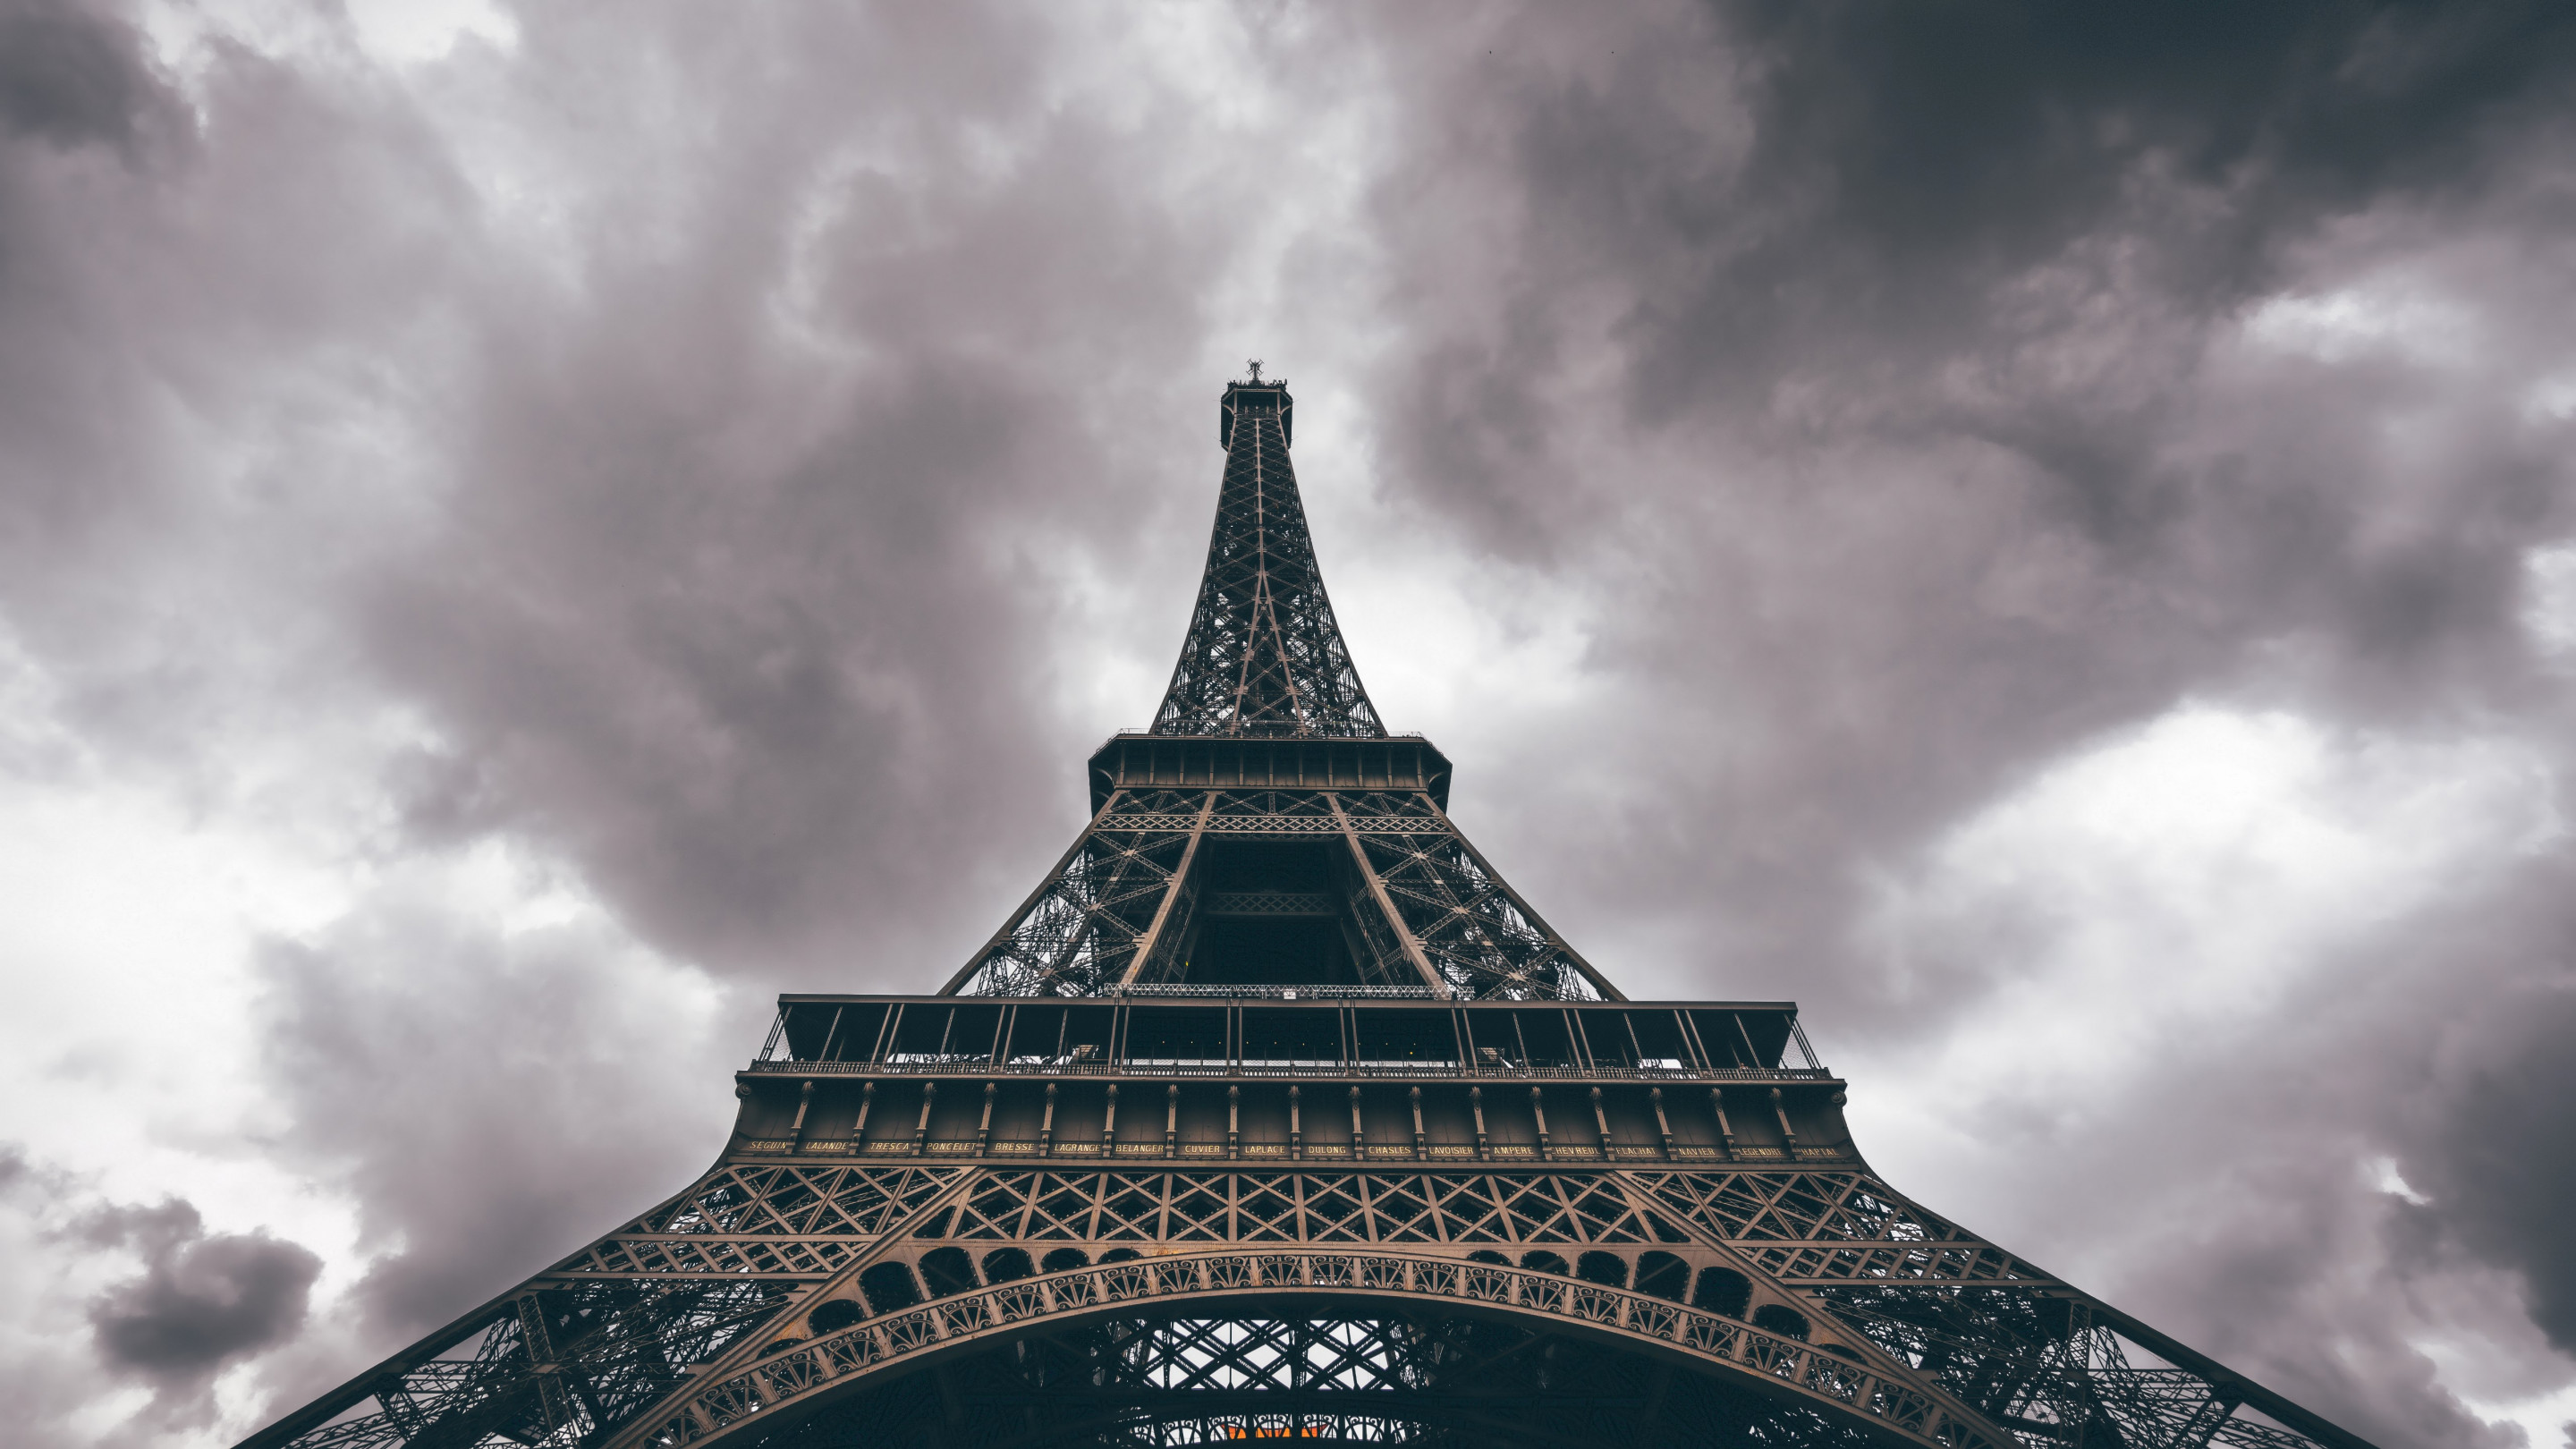 Eiffel Tower in a cloudy day wallpaper 2880x1620